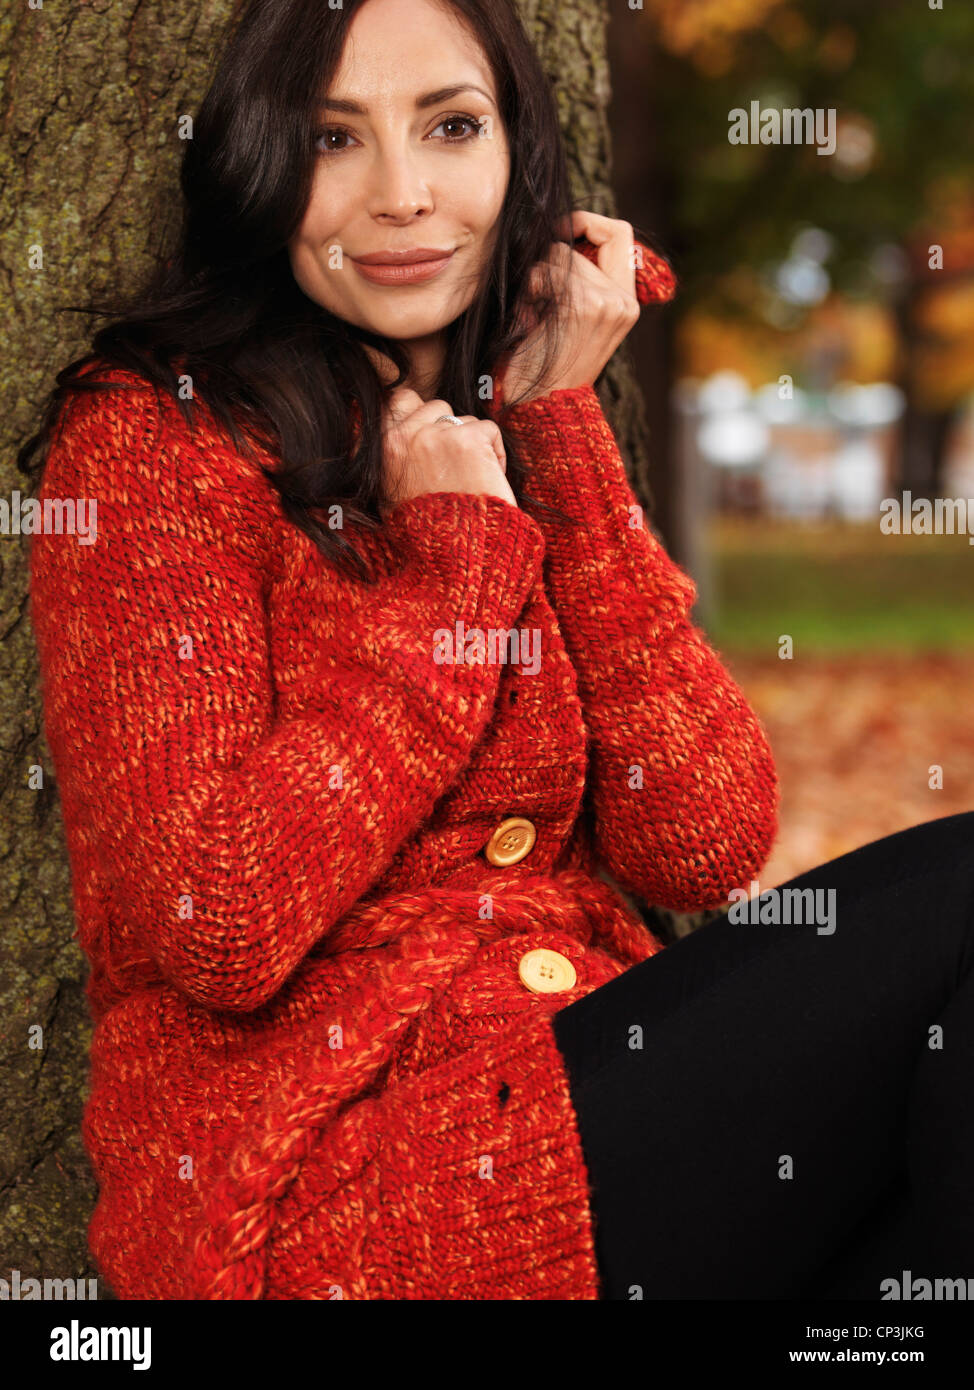 Beautiful smiling young woman cuddling up in a red sweater outdoors in fall Stock Photo